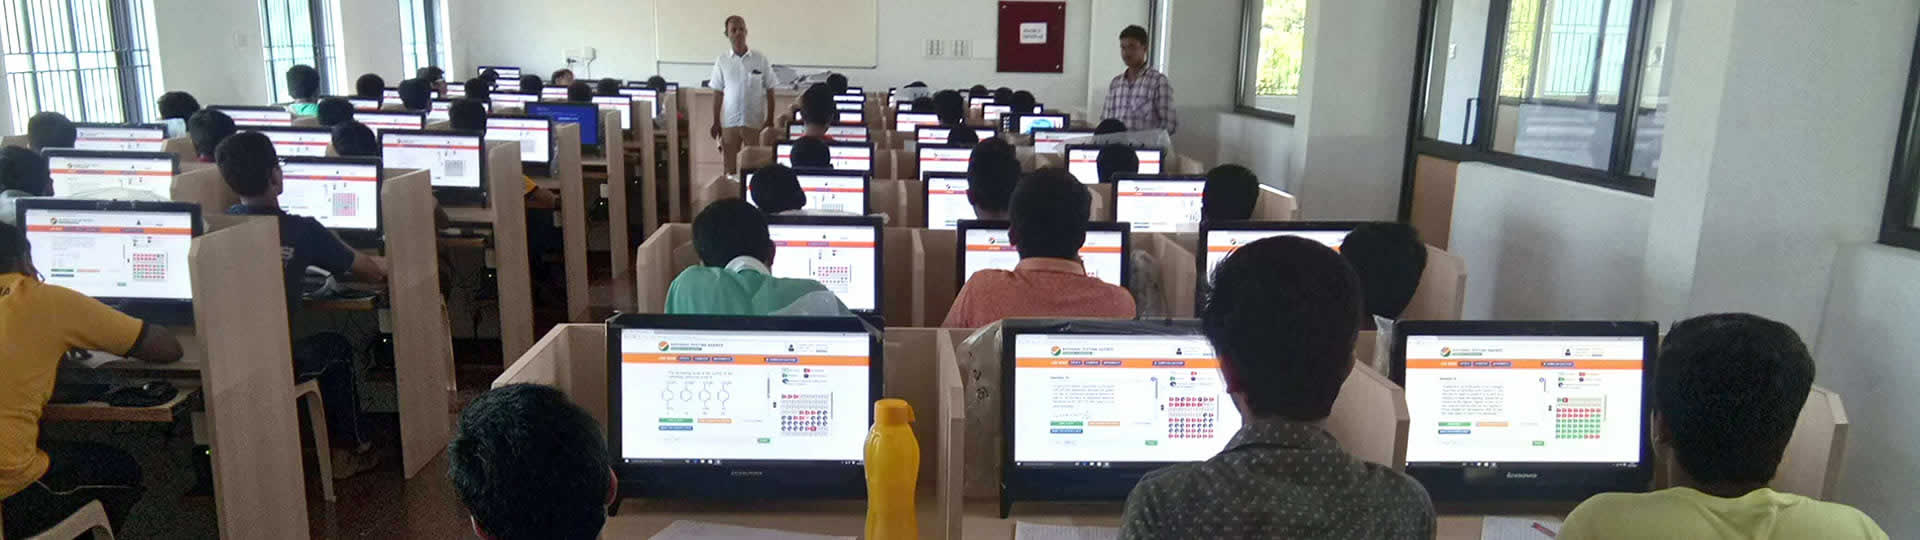 Computer based exam organized by PEB